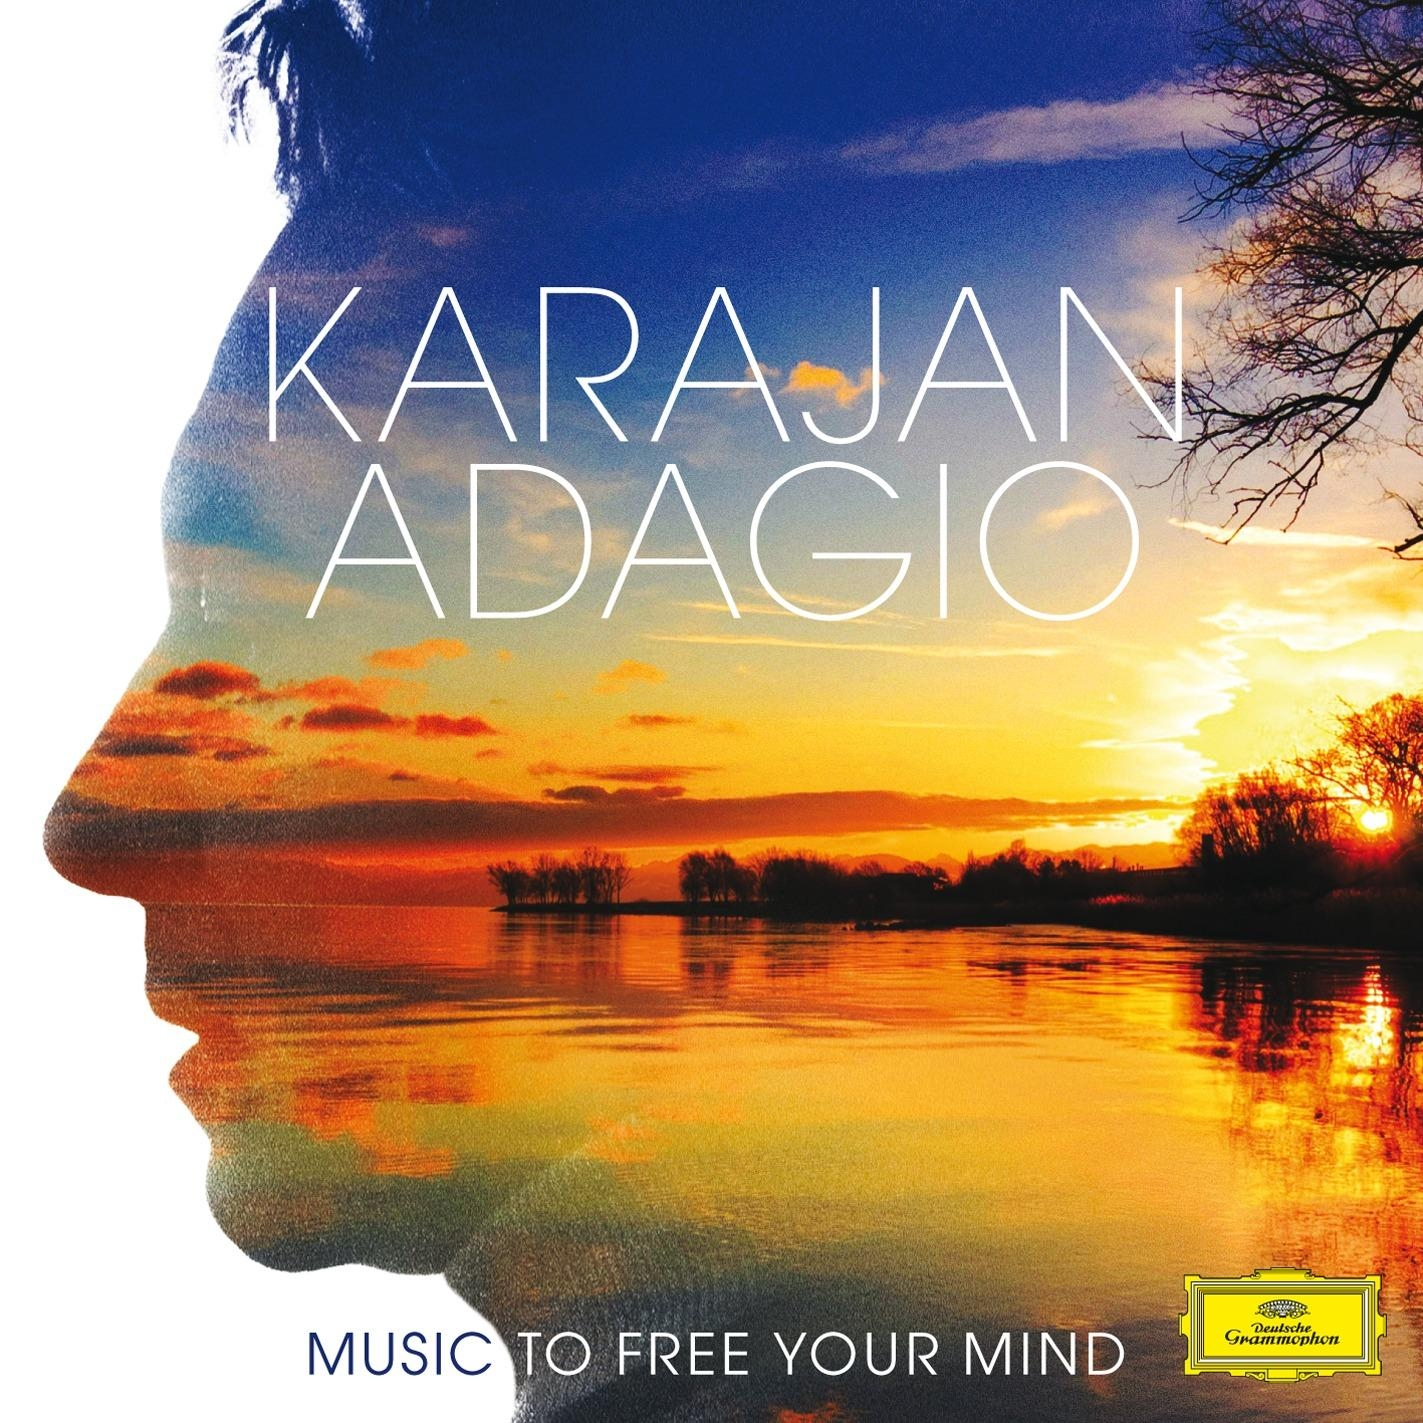 【数码影音】Karajan Adagio: Music To Free Your Mind - 山夫 - 天地有大美而不言